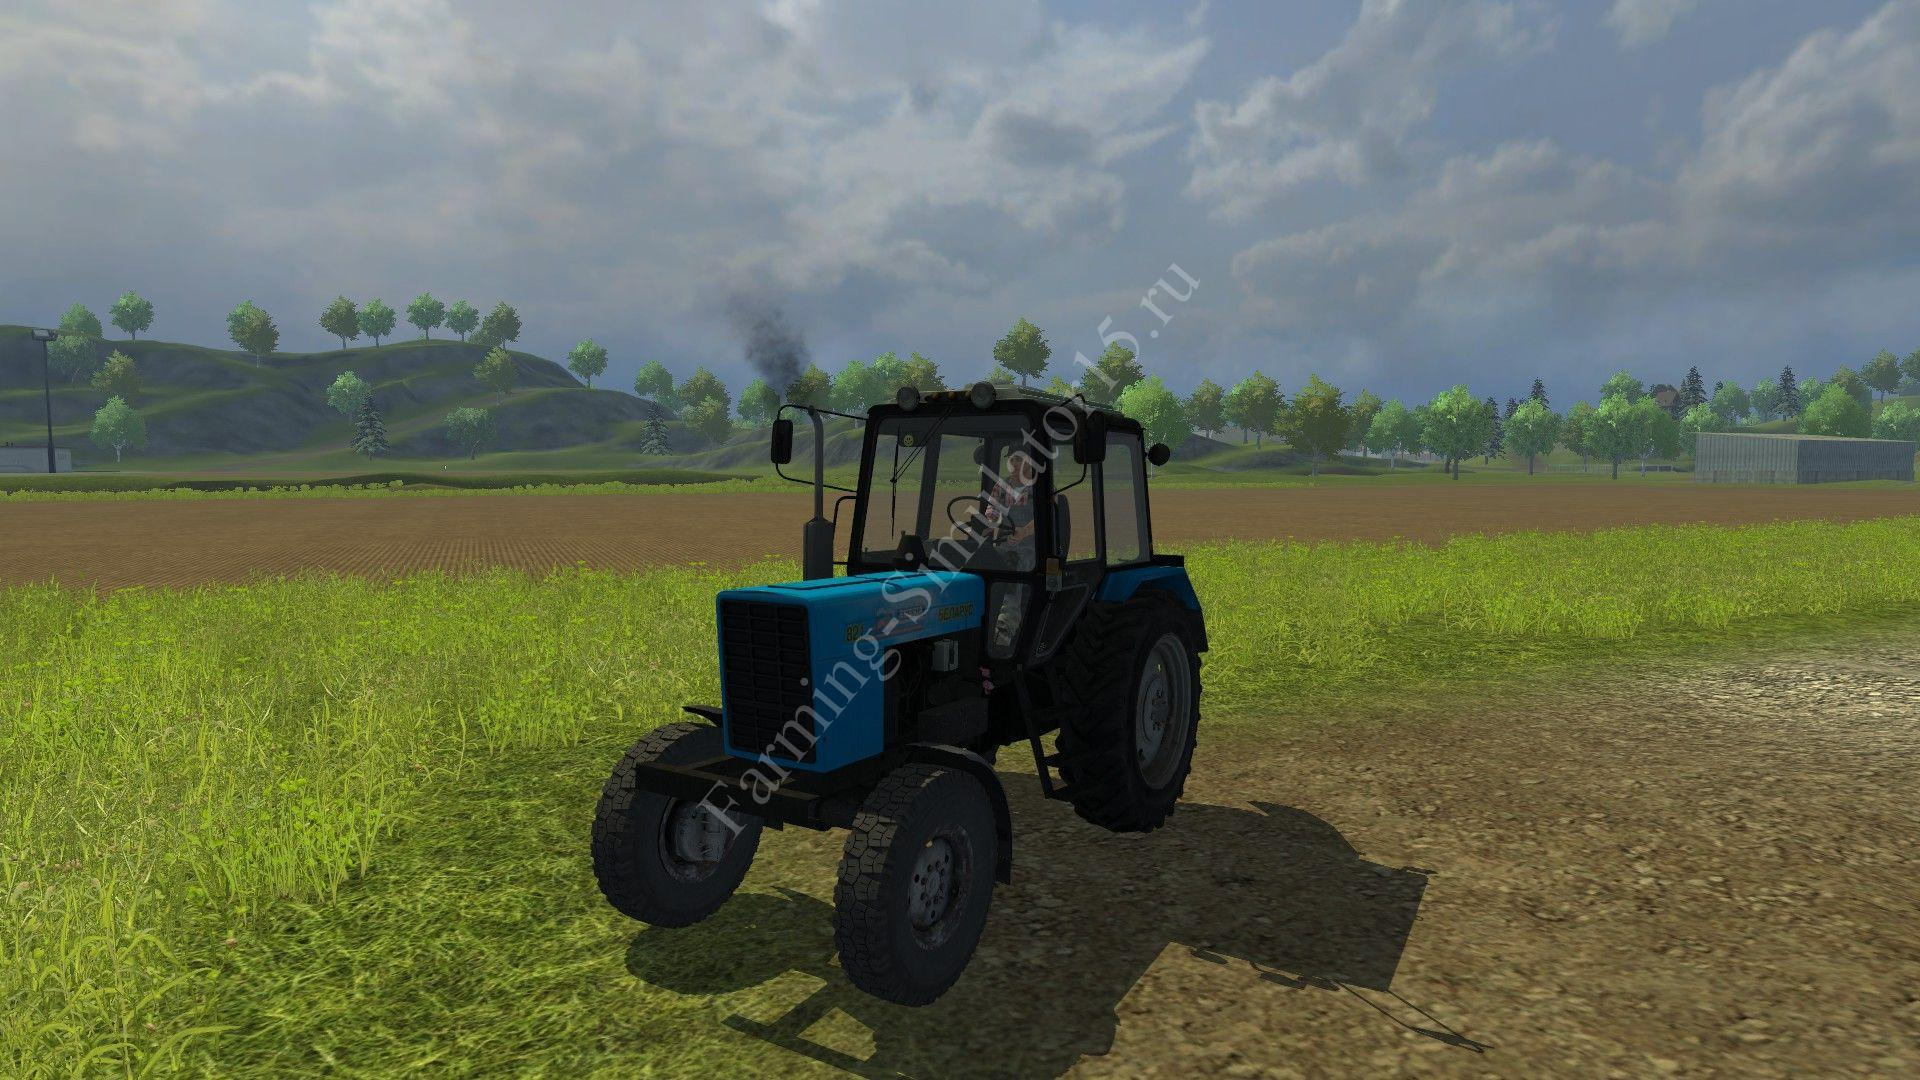 Мод трактора Беларус MTZ 82.1 v 2.0 Farming Simulator 2013, Farming Simulator 13